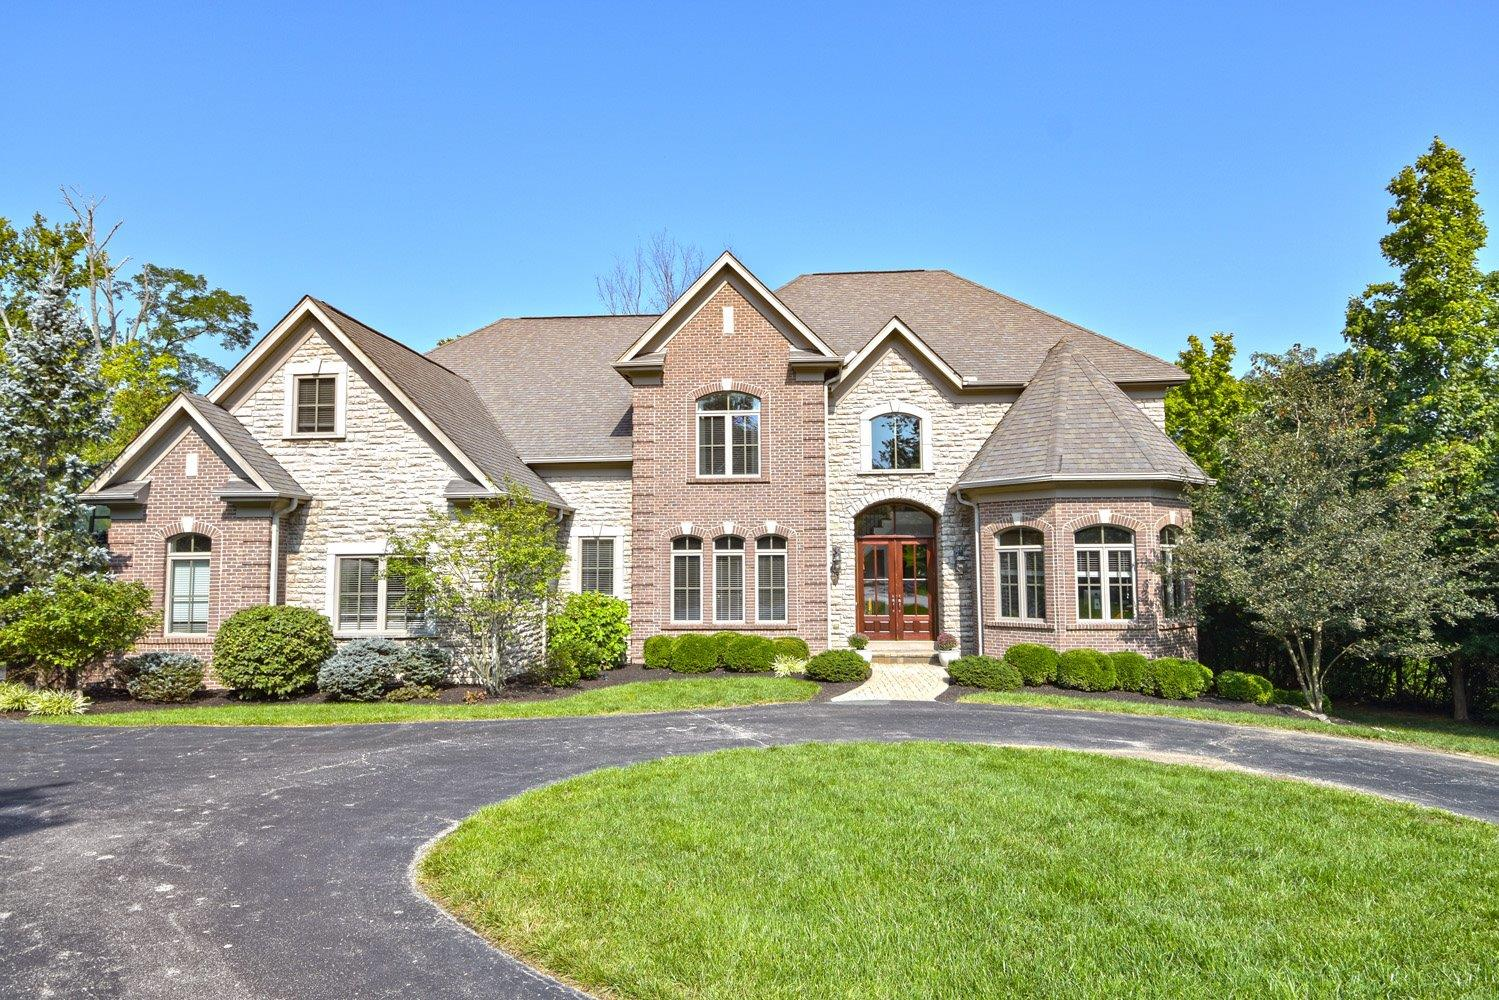 8587 Concord Hills Cir Sycamore Twp., OH